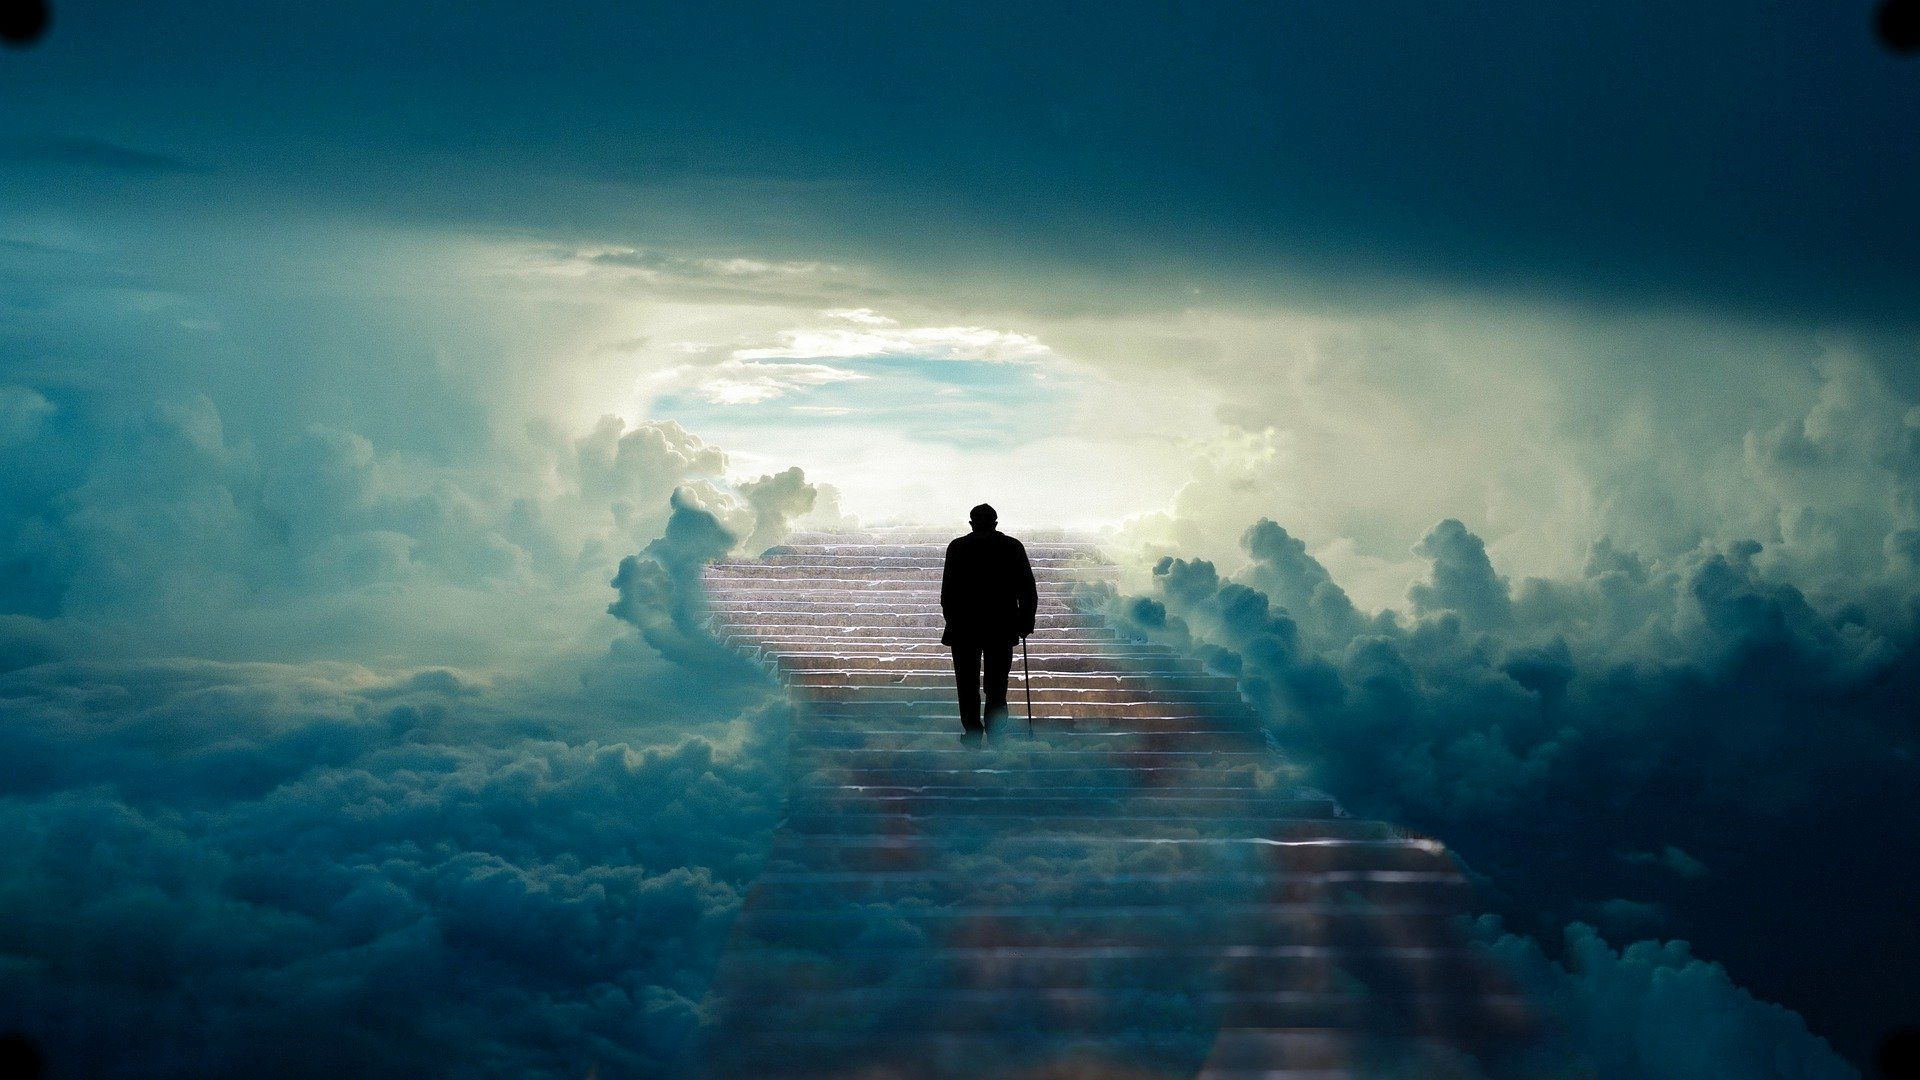 Silhouette of a man walking on a path through the clouds